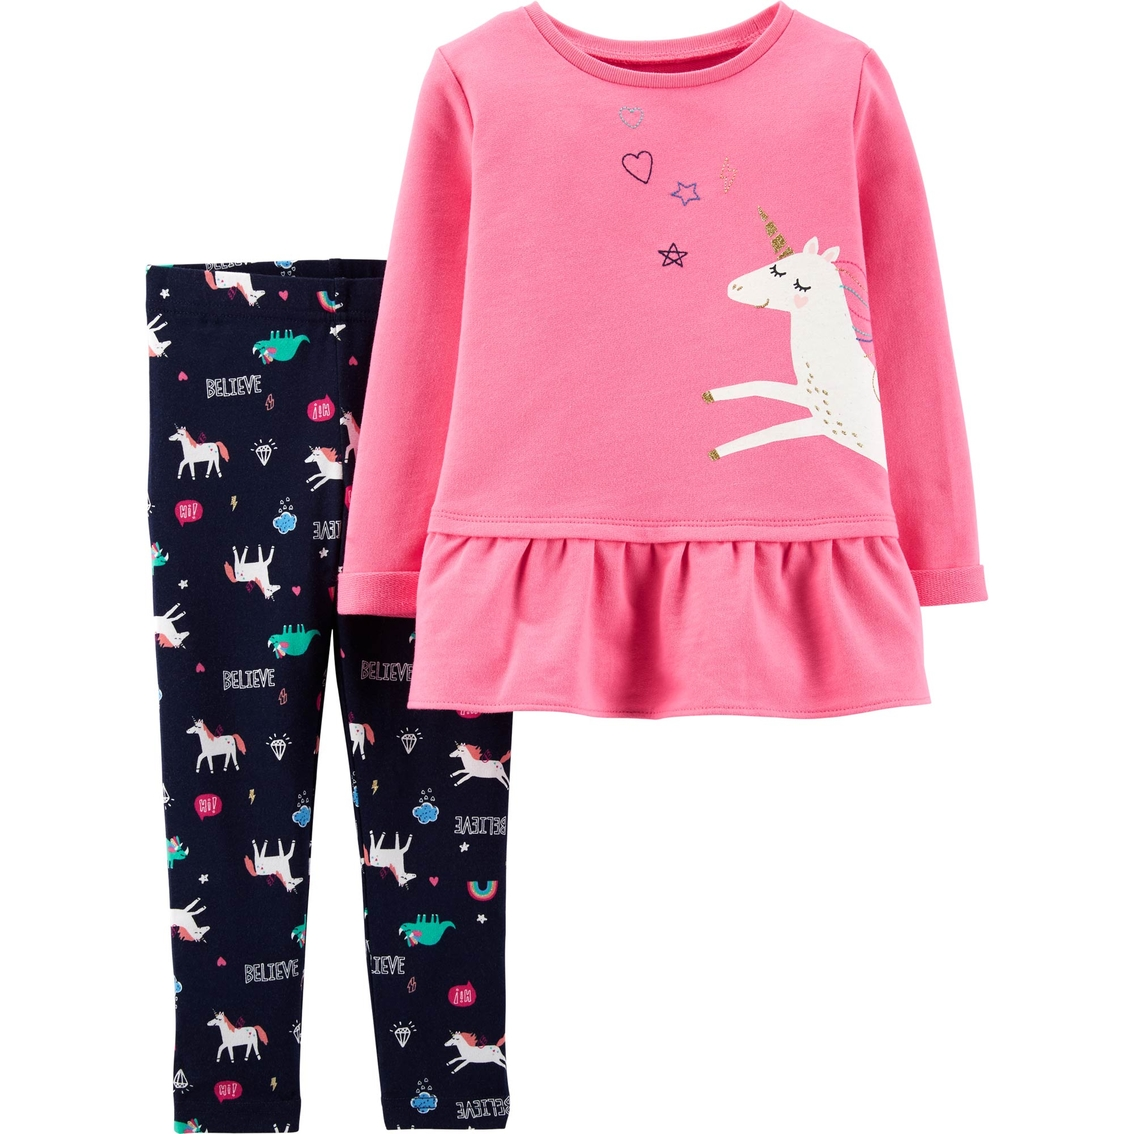 04d24923bae88 Carter's Toddler Girls Unicorn French Terry Top And Leggings 2 Pc ...